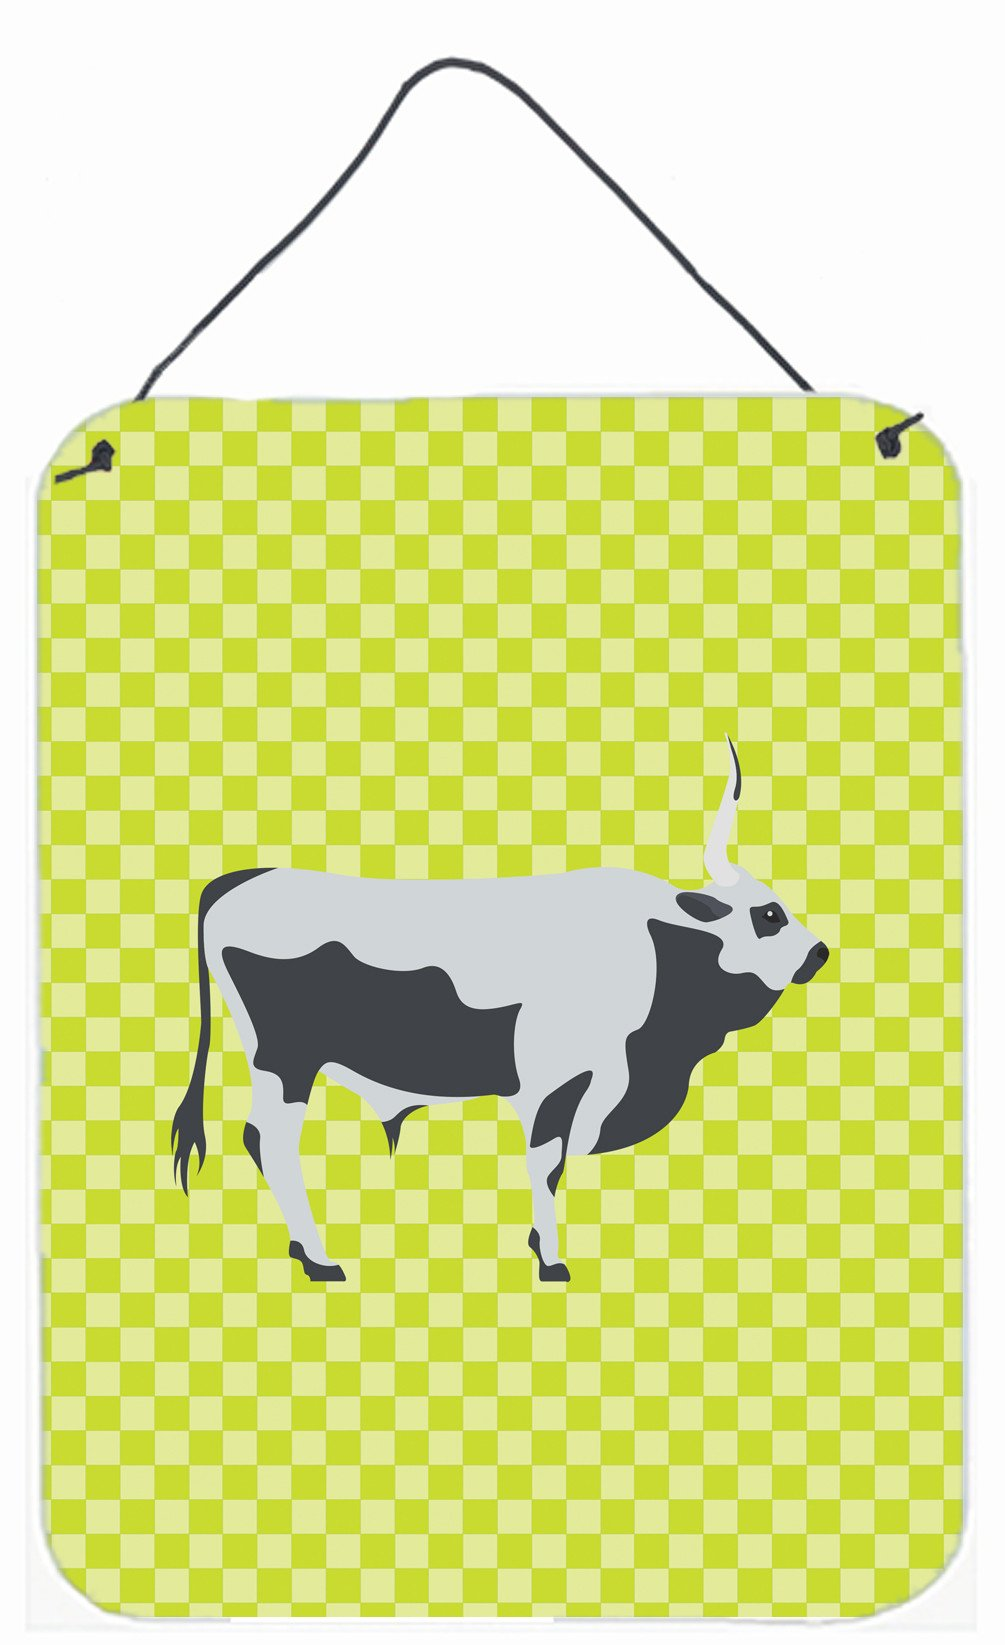 Hungarian Grey Steppe Cow Green Wall or Door Hanging Prints BB7650DS1216 by Caroline's Treasures